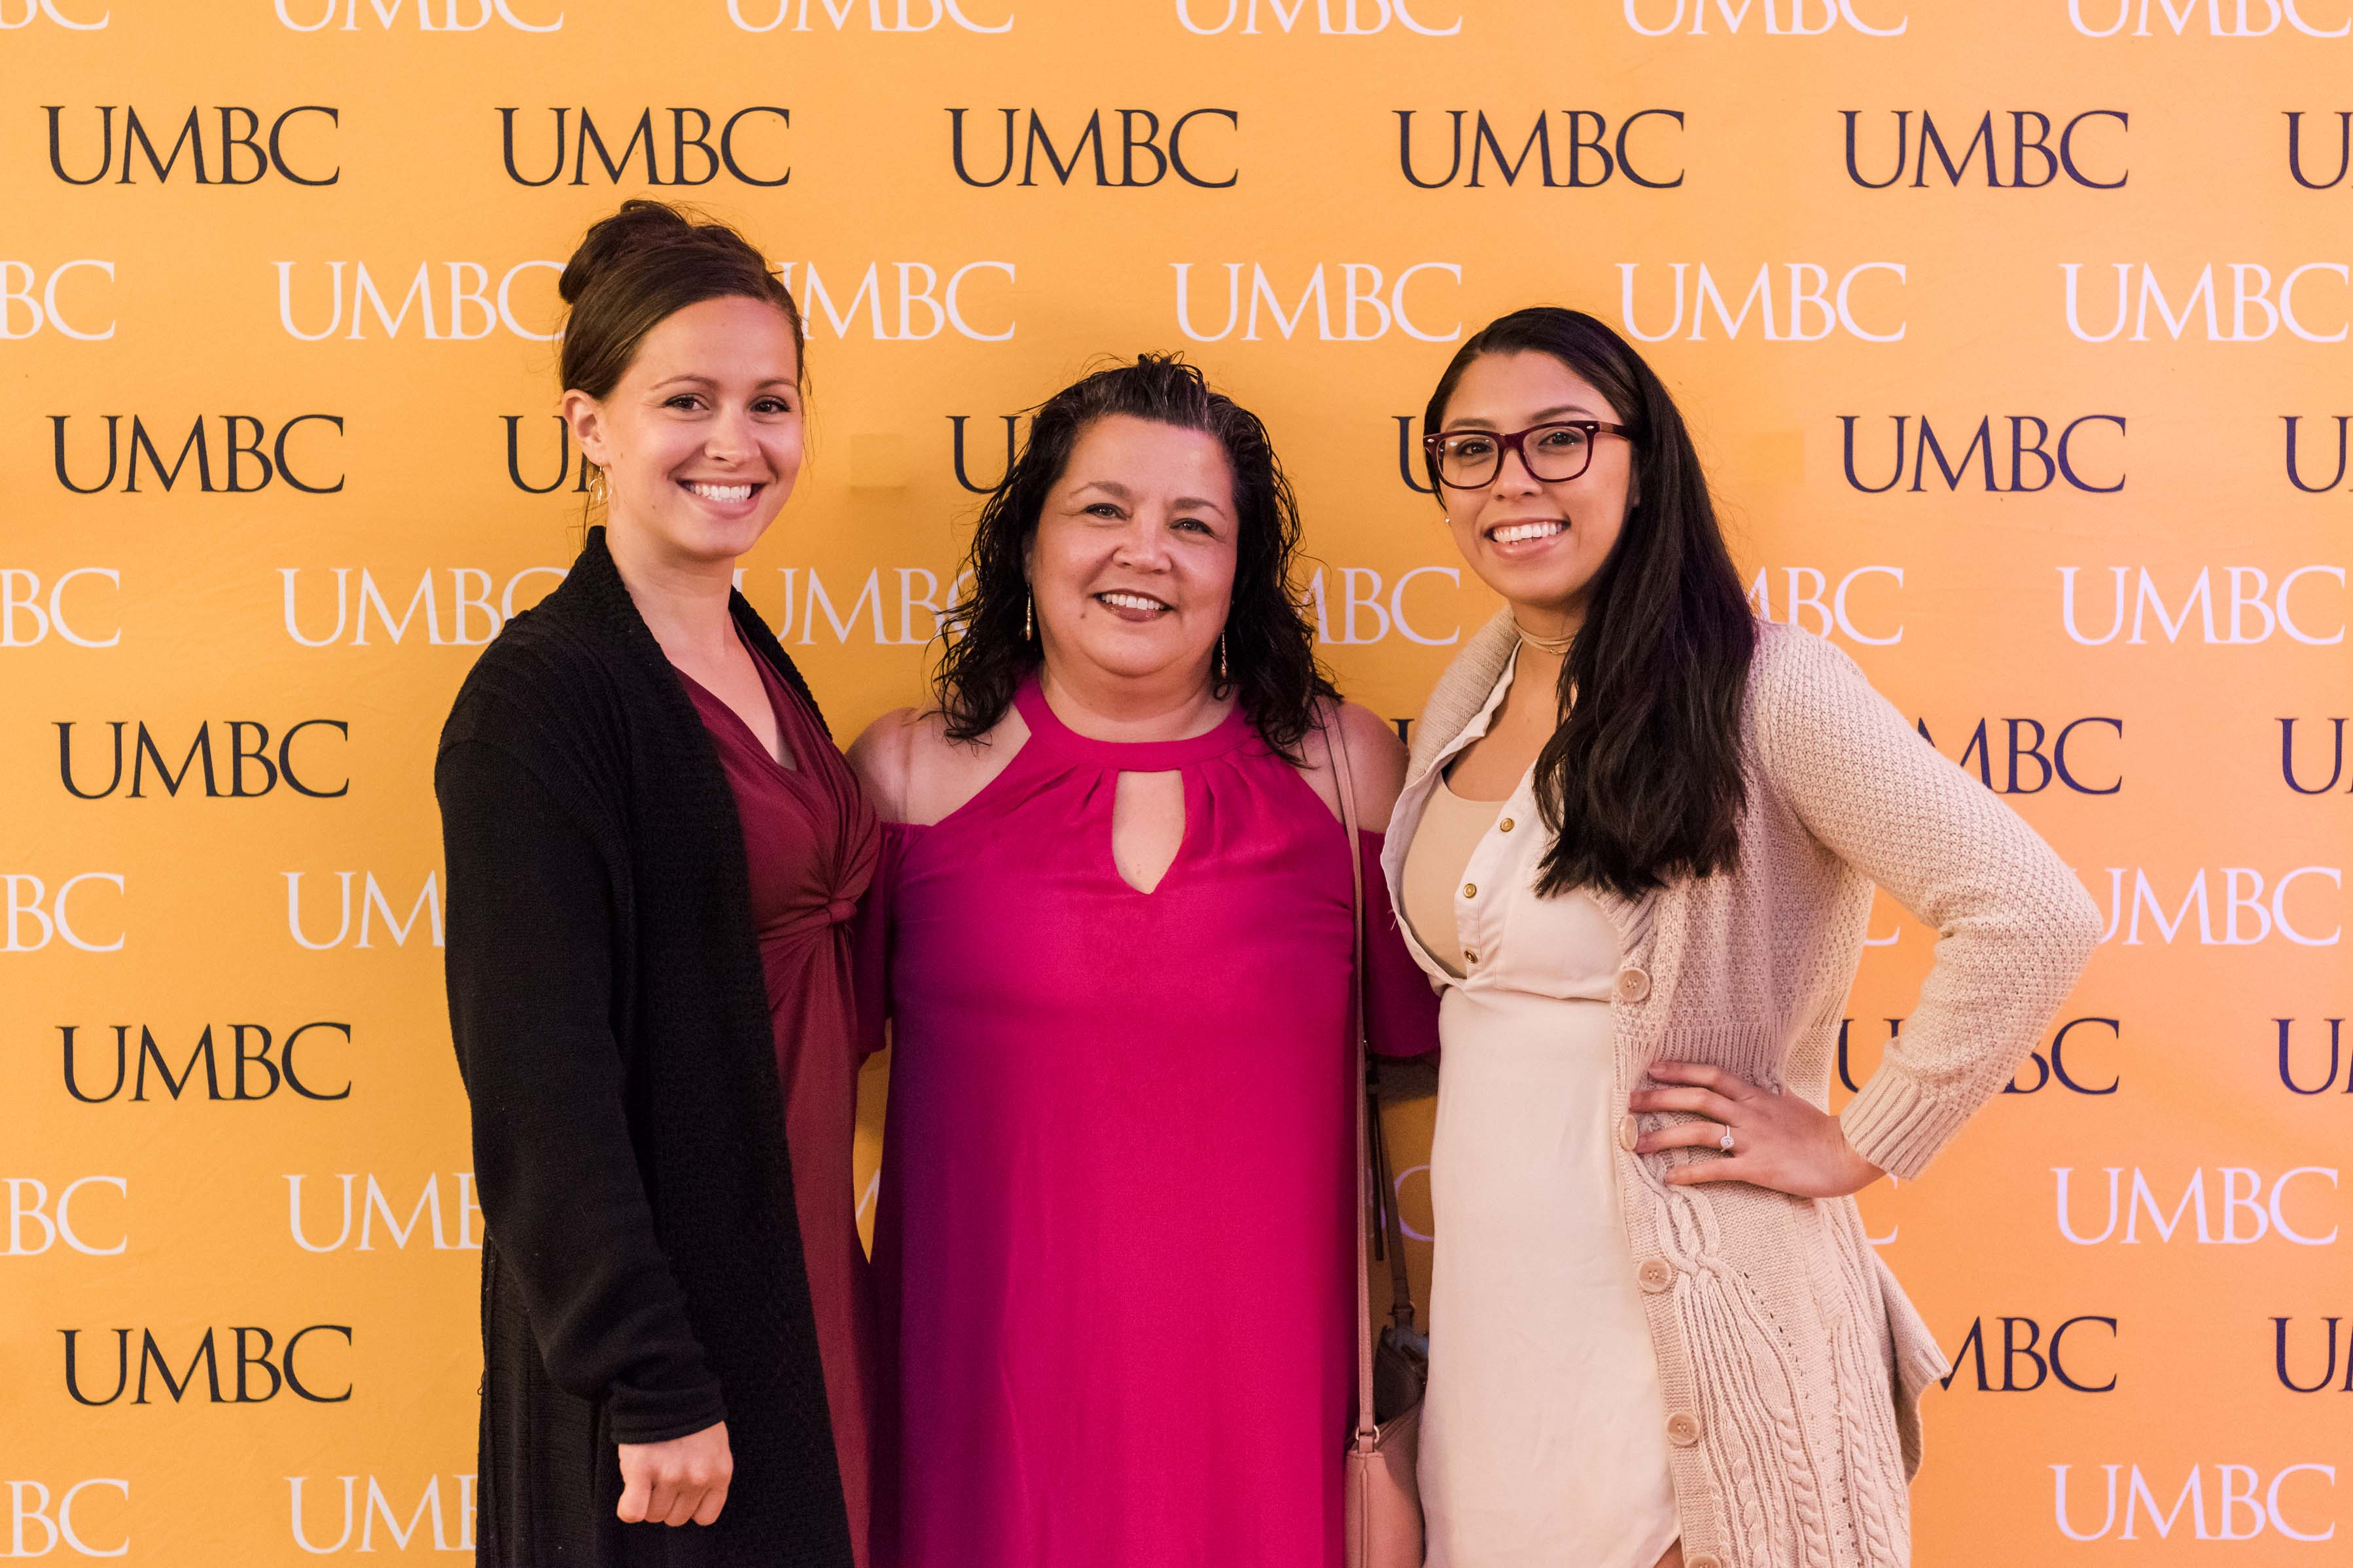 Three women pose together at UMBC wall for wine tasting event